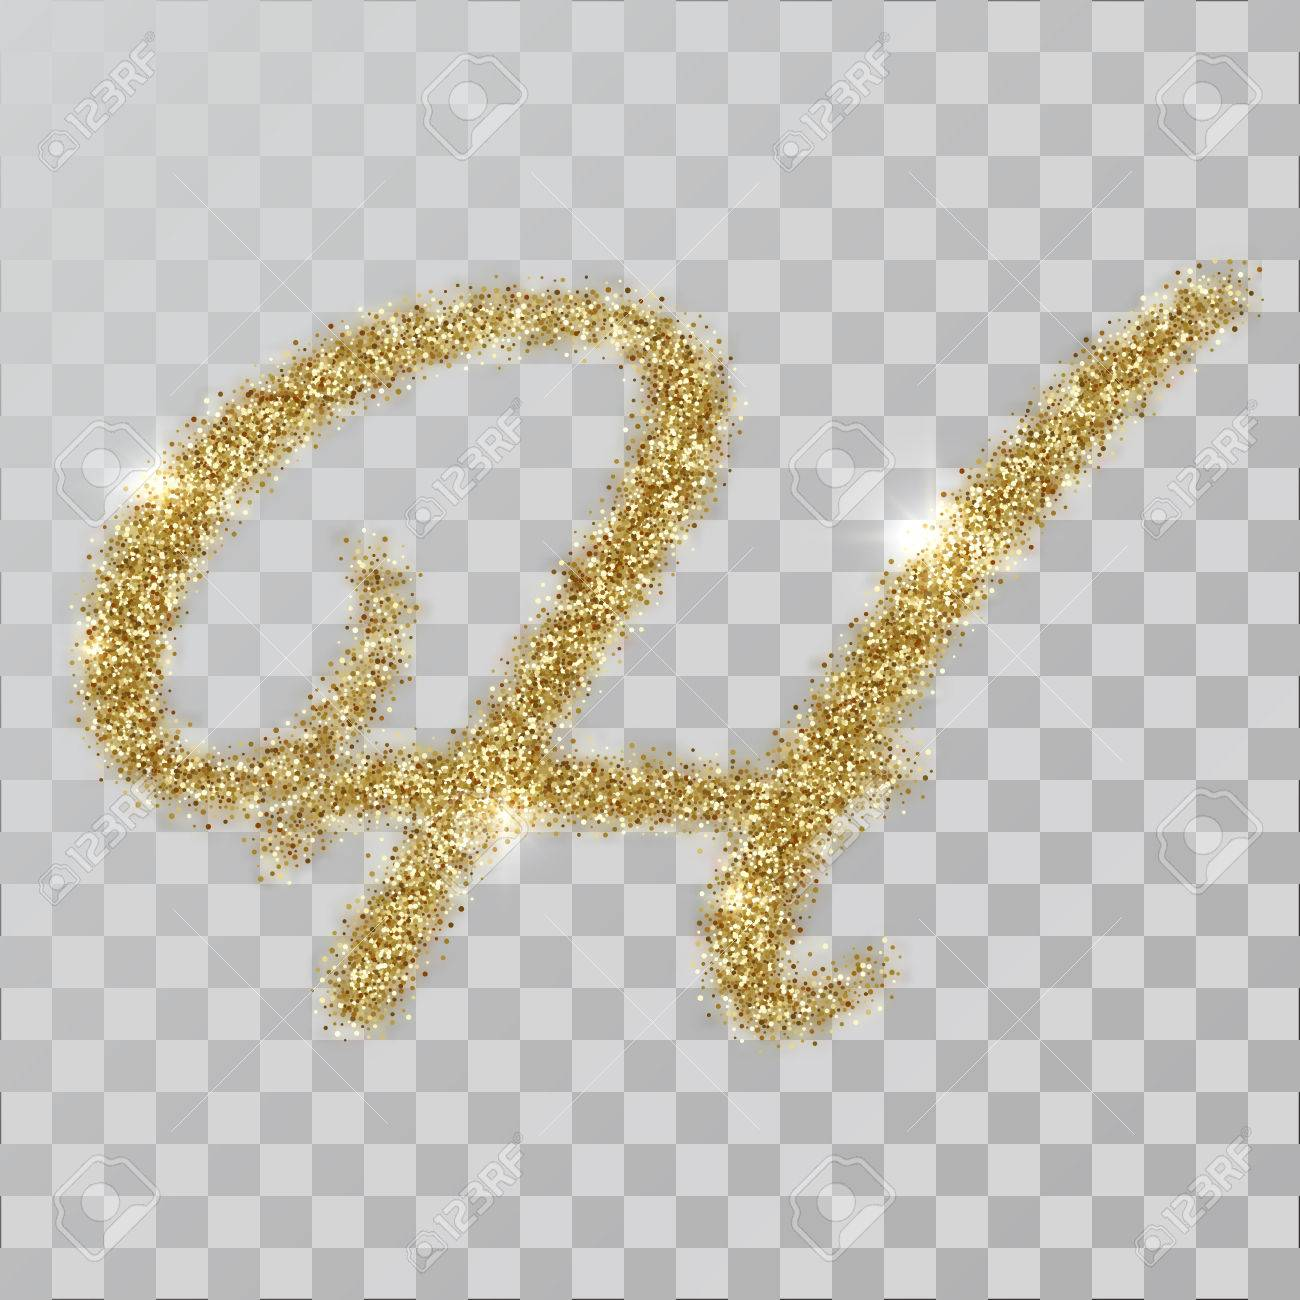 Gold glitter powder letter H in hand painted style  illustration